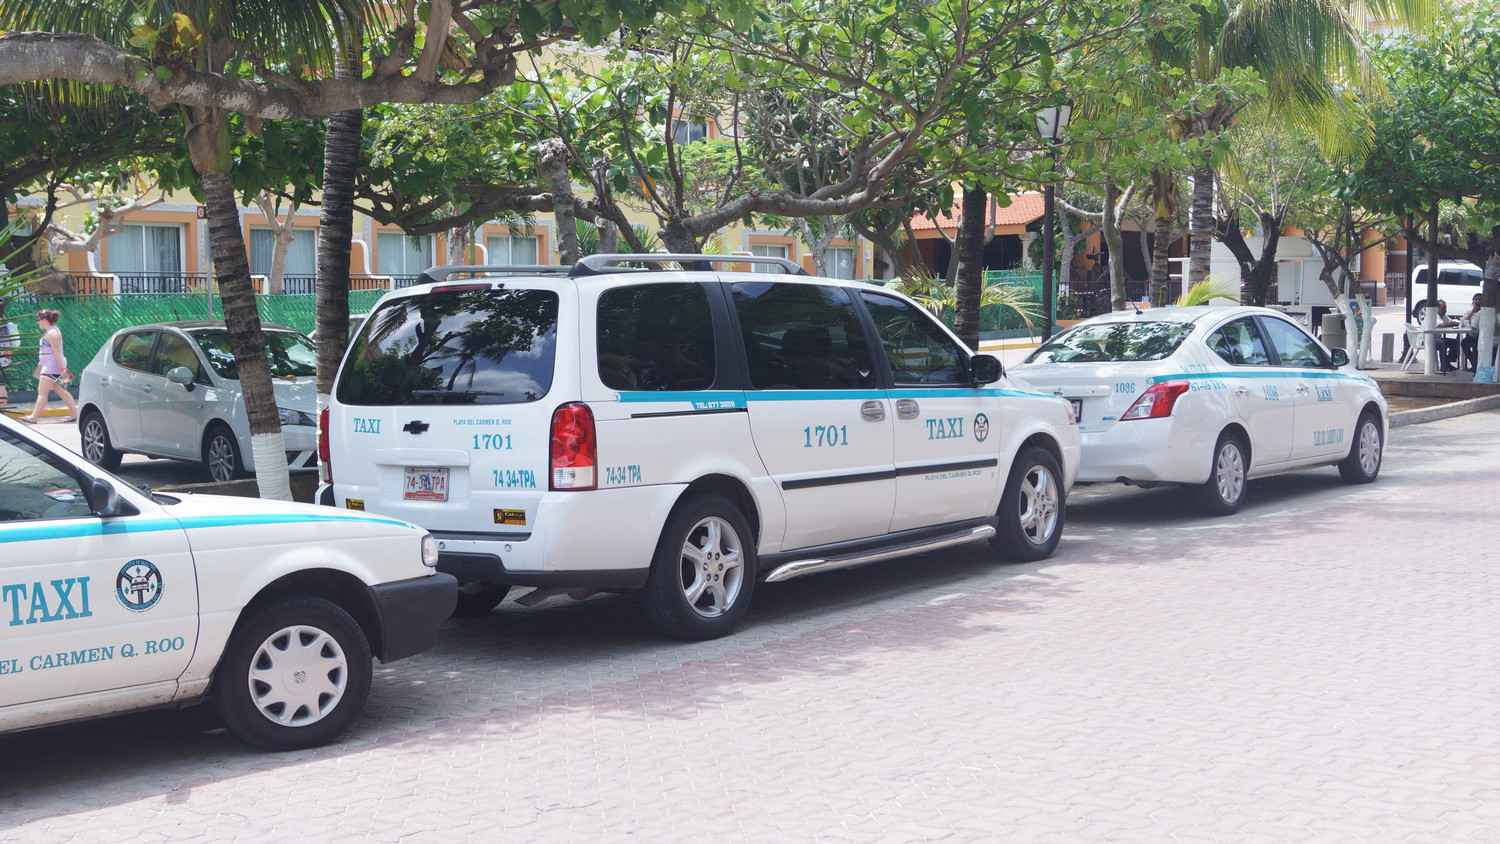 Several taxis lined up on a Playa Del Carmen street.